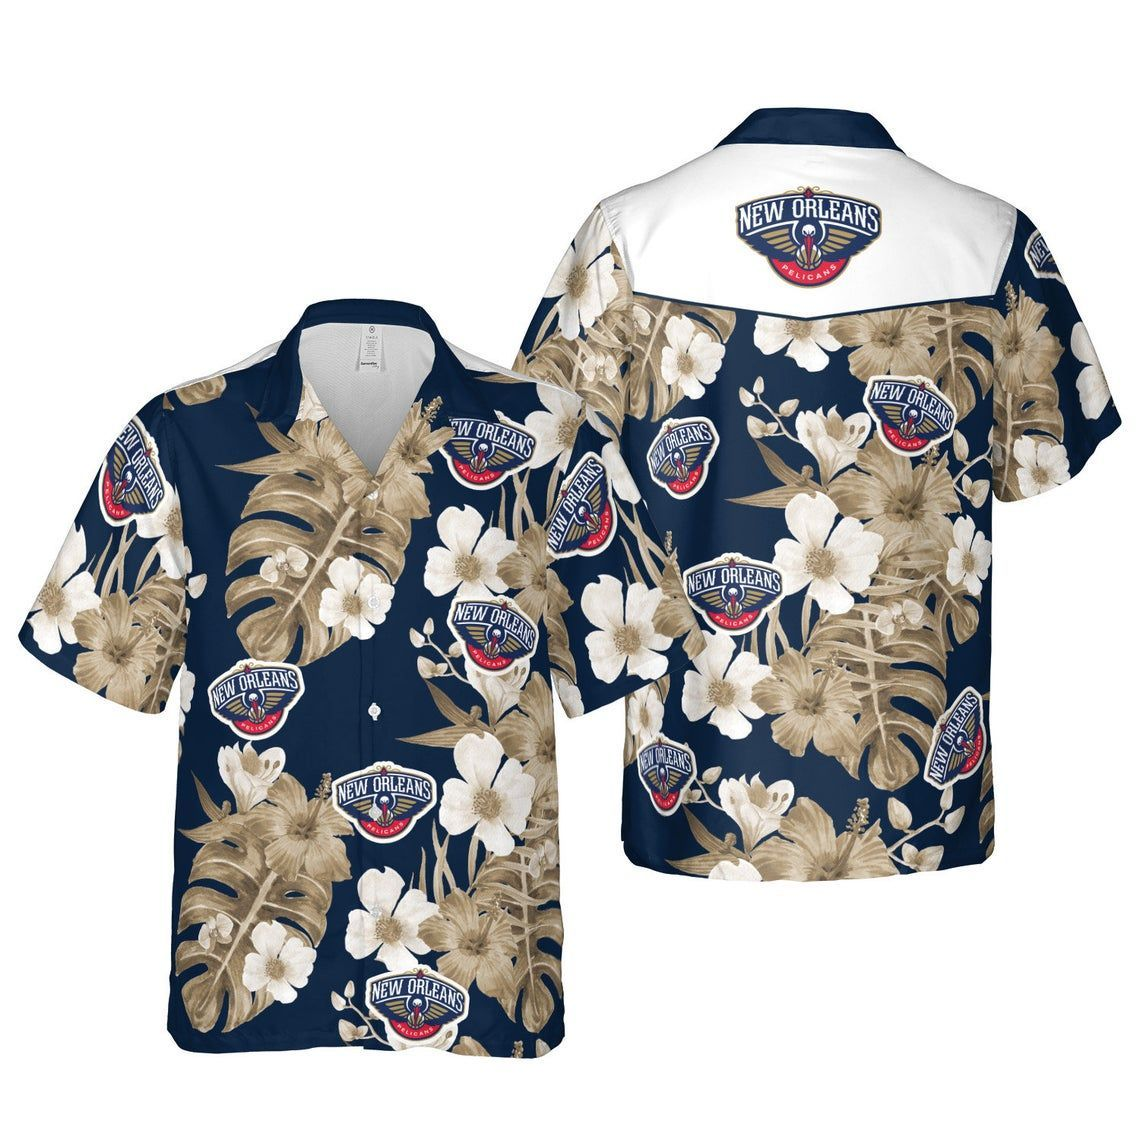 New Orleans Pelicans New Orleans Hawaii Floral Basketball Shirt